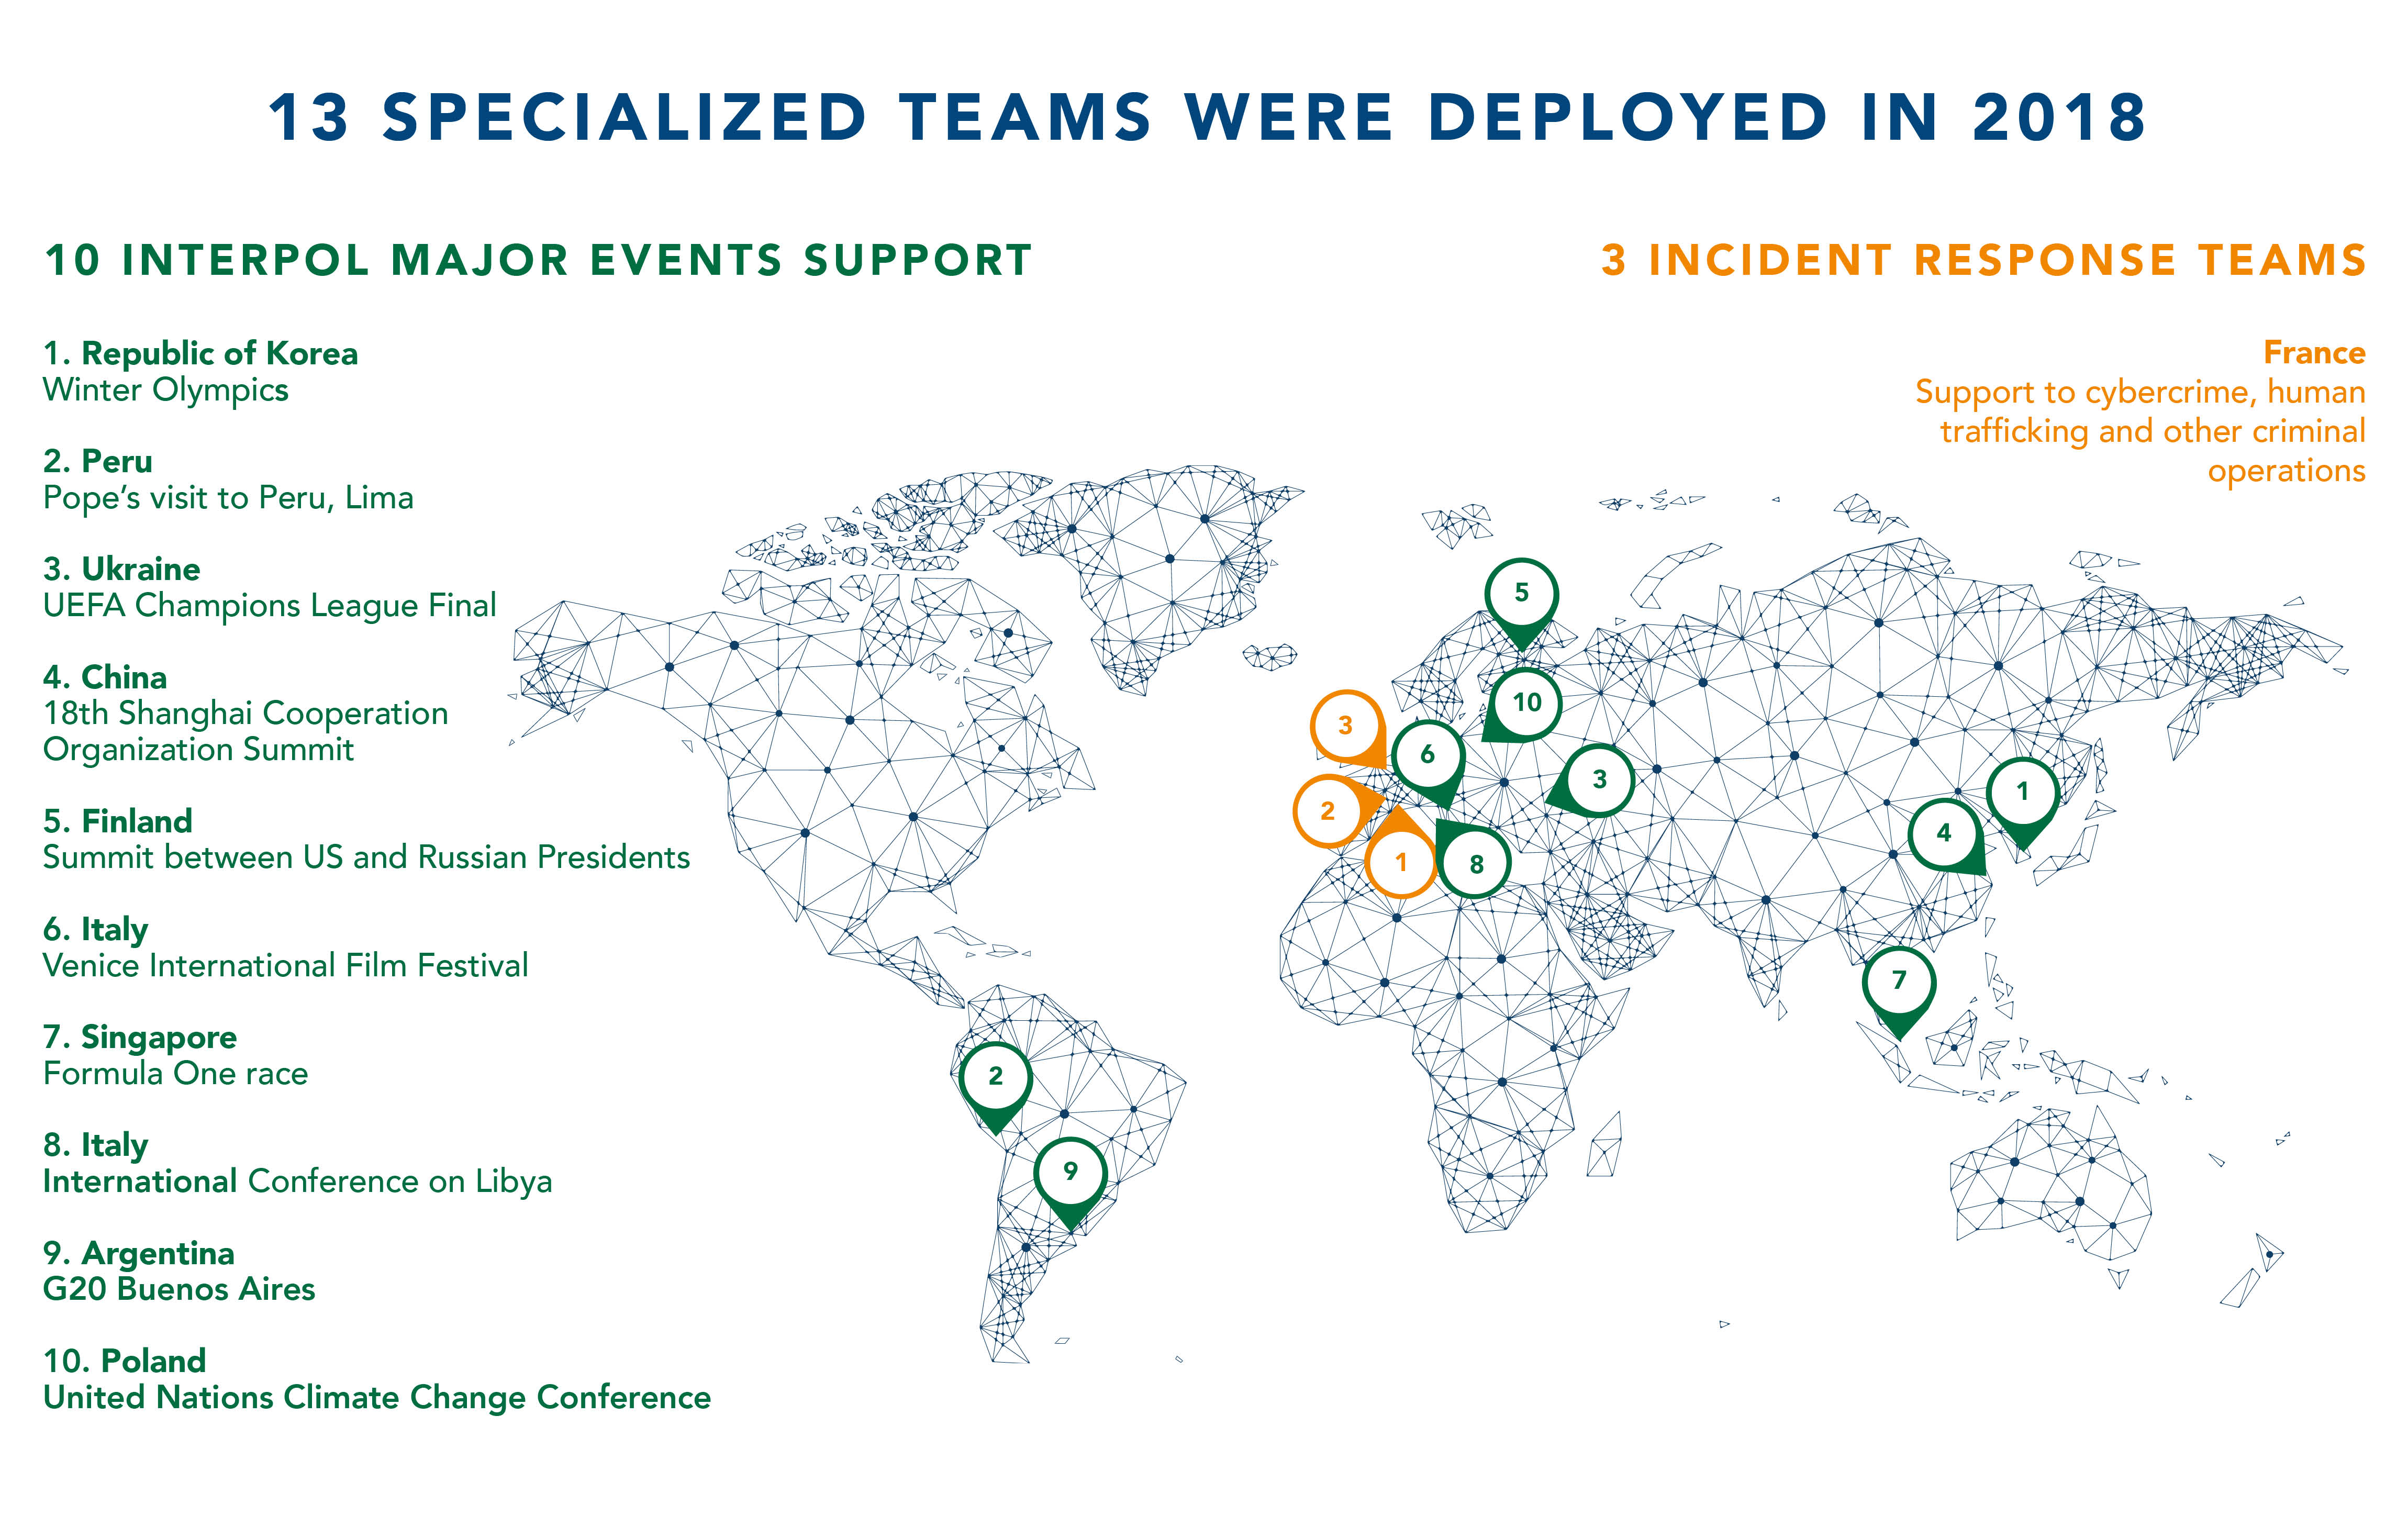 13 Specialized teams were deployed in 2018